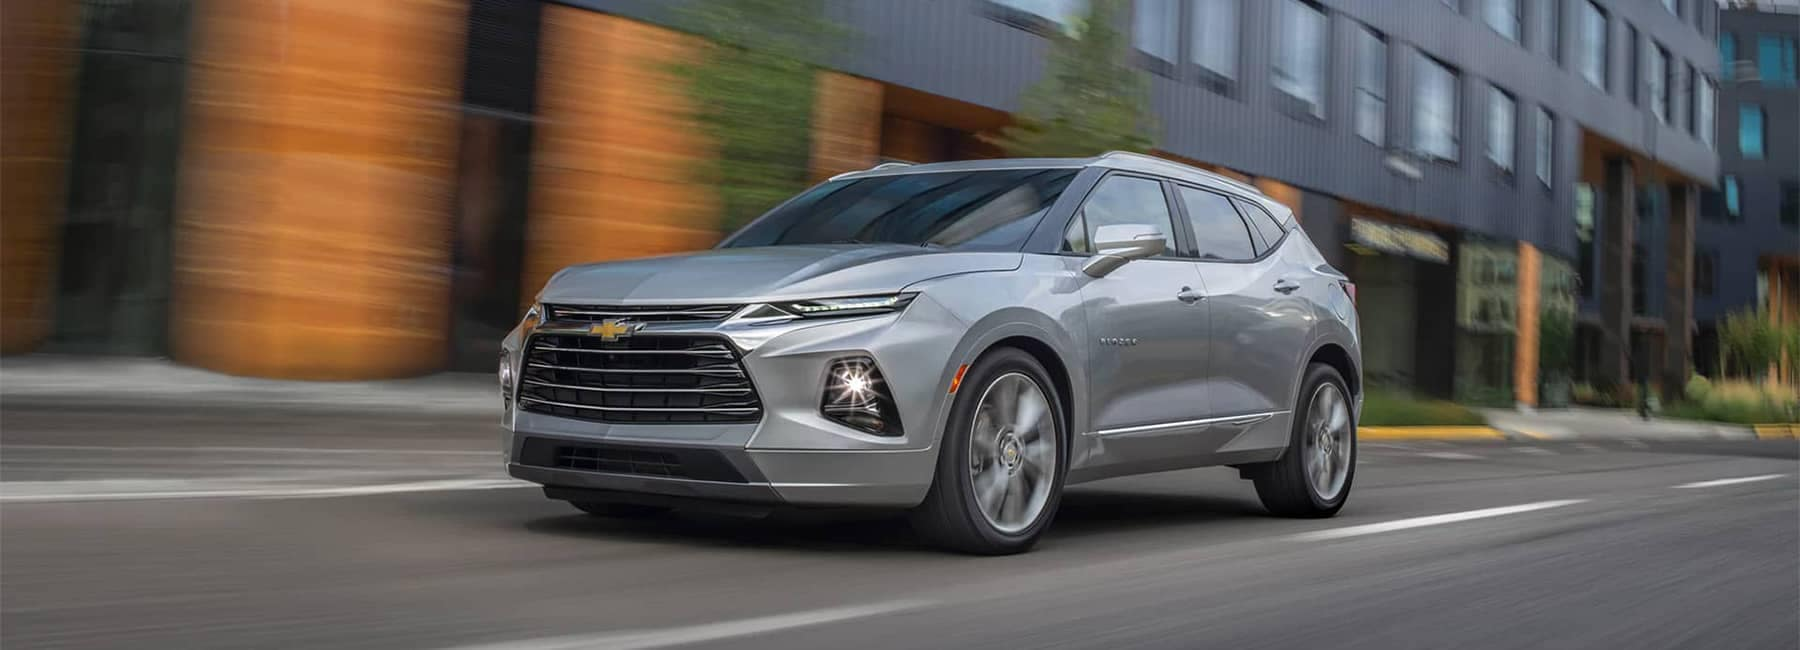 2019 Chevrolet Blazer Driving Down City Street